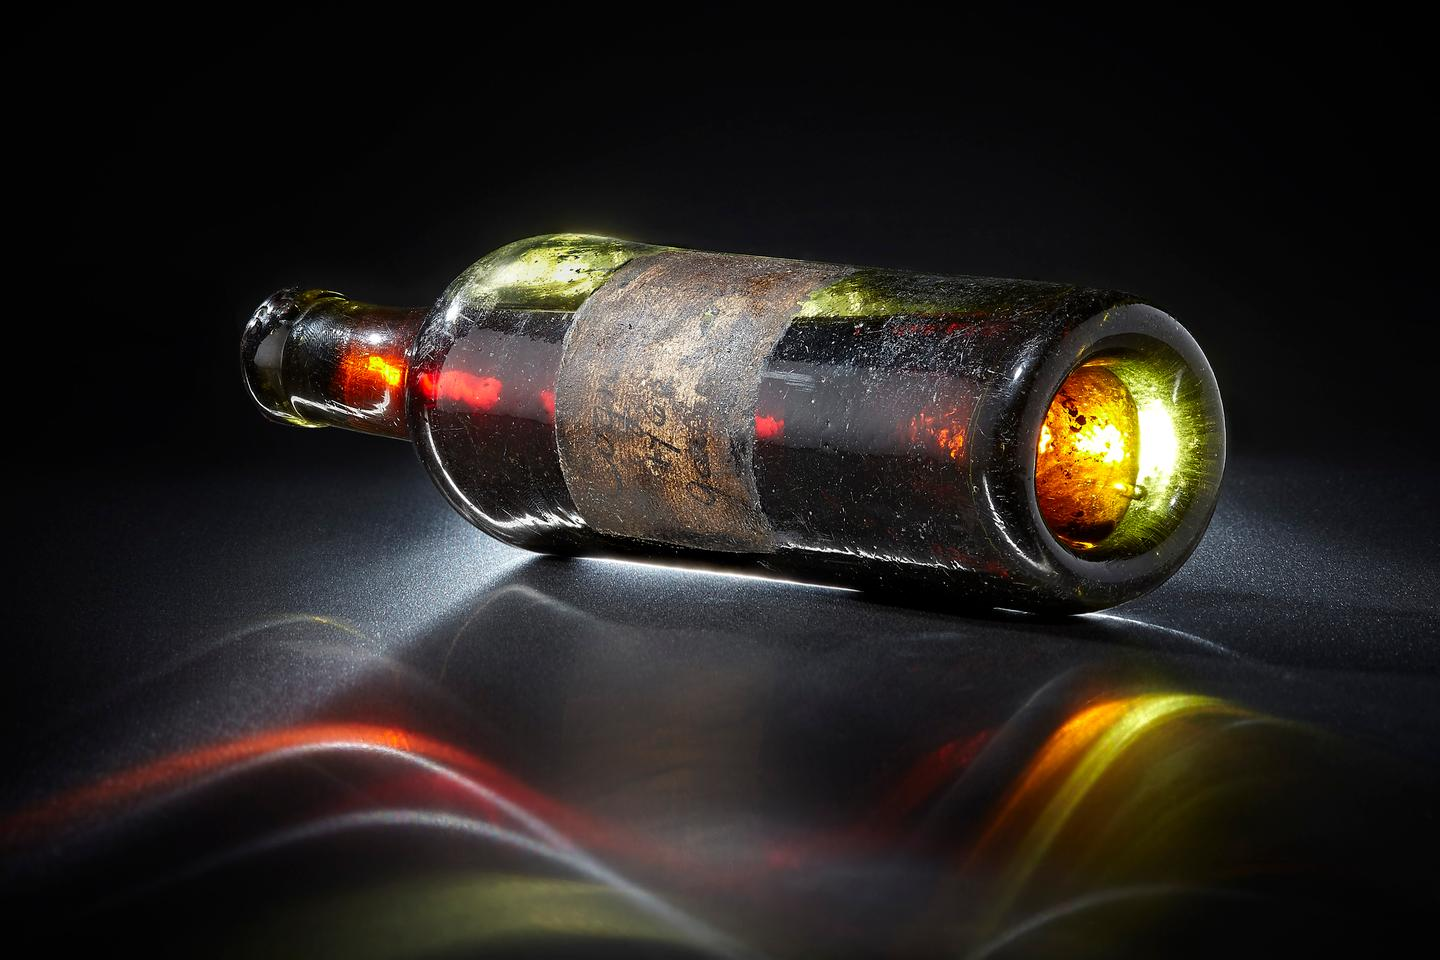 Only three bottle were known of the 1762 Gautier Cognac. The bottle pictured was auctioned by Bonhams in New York on April 30, 2014, selling to Polish company Wealth Solutions for US$59,500 and has subsequently been opened and its contents dispersed into a range of high-priced merchandise - watches, coins and fountain pens. Another of the bottles is now in the Gautier Museum and can be expected to remain there for the foreseeable future. The third and largest bottle will sell at auction on May 28, 2020. It is the only publicly available bottle of the world's oldest Cognac, and competition to own it is expected to be ferocious.